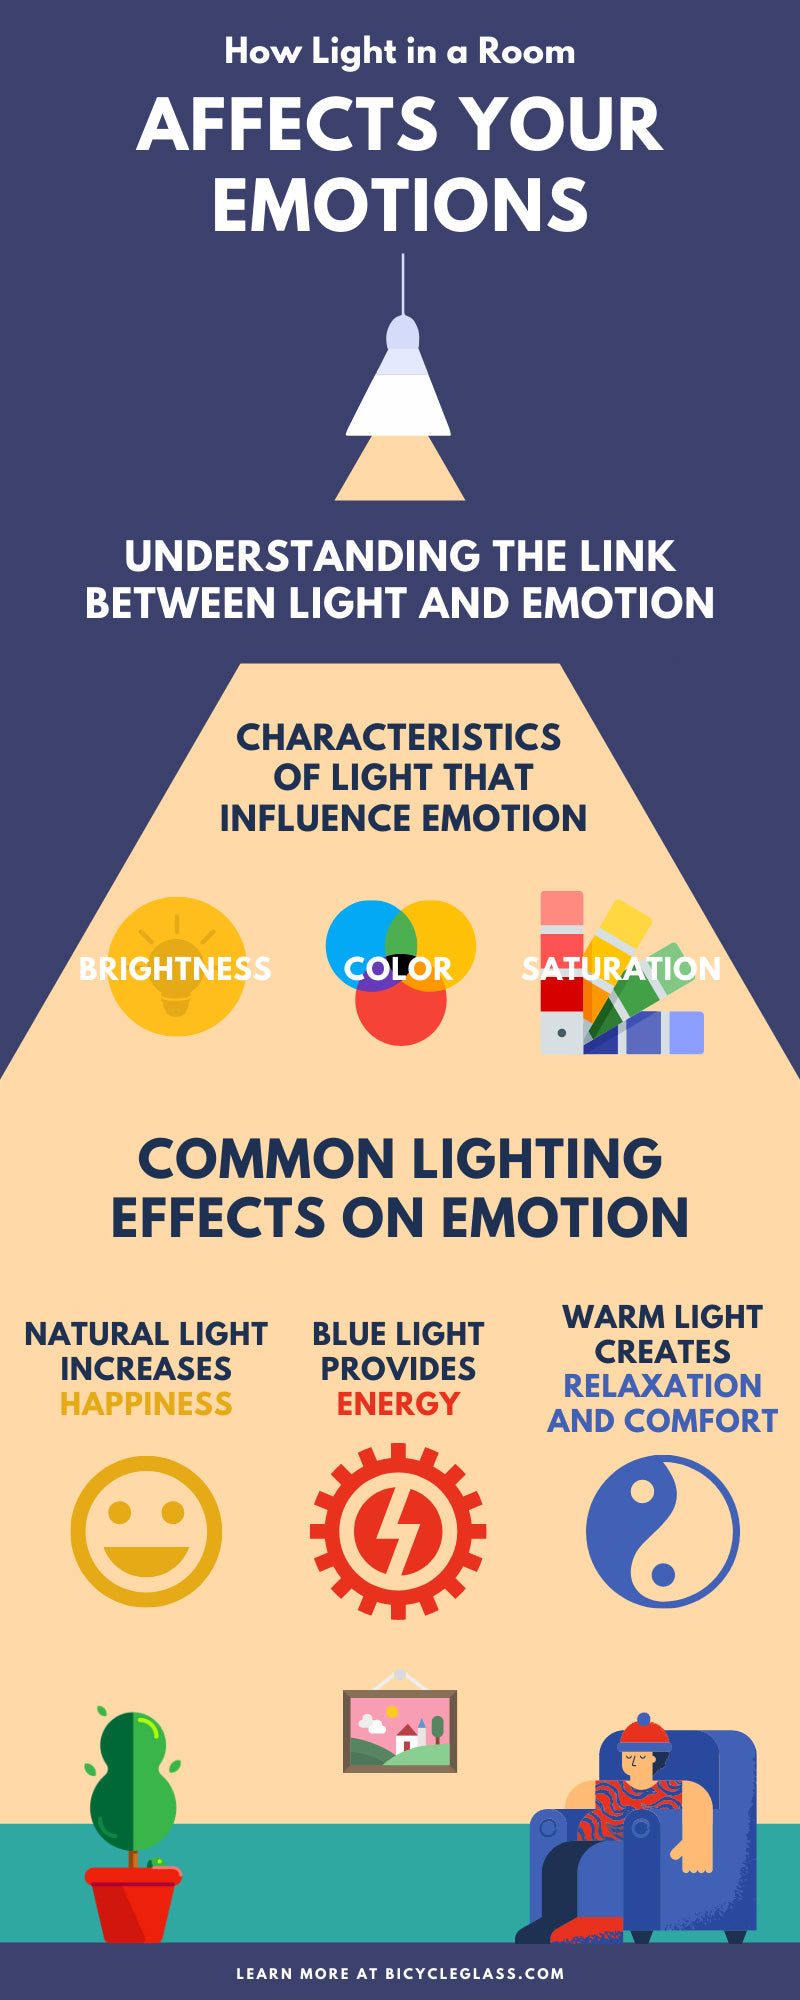 Room Light Affects Your Emotions